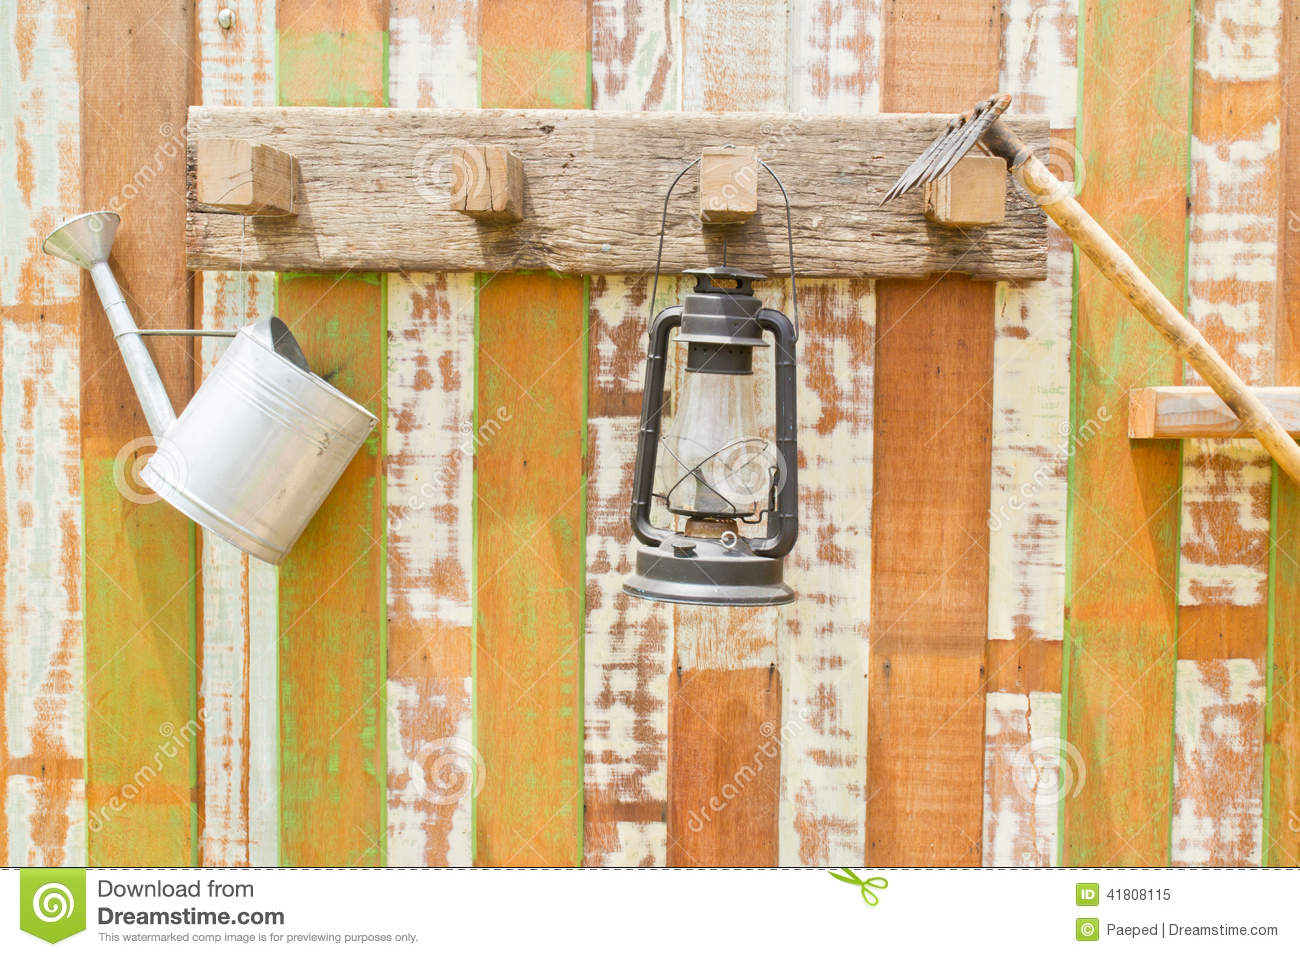 Gardening tools hanging on wooden wall